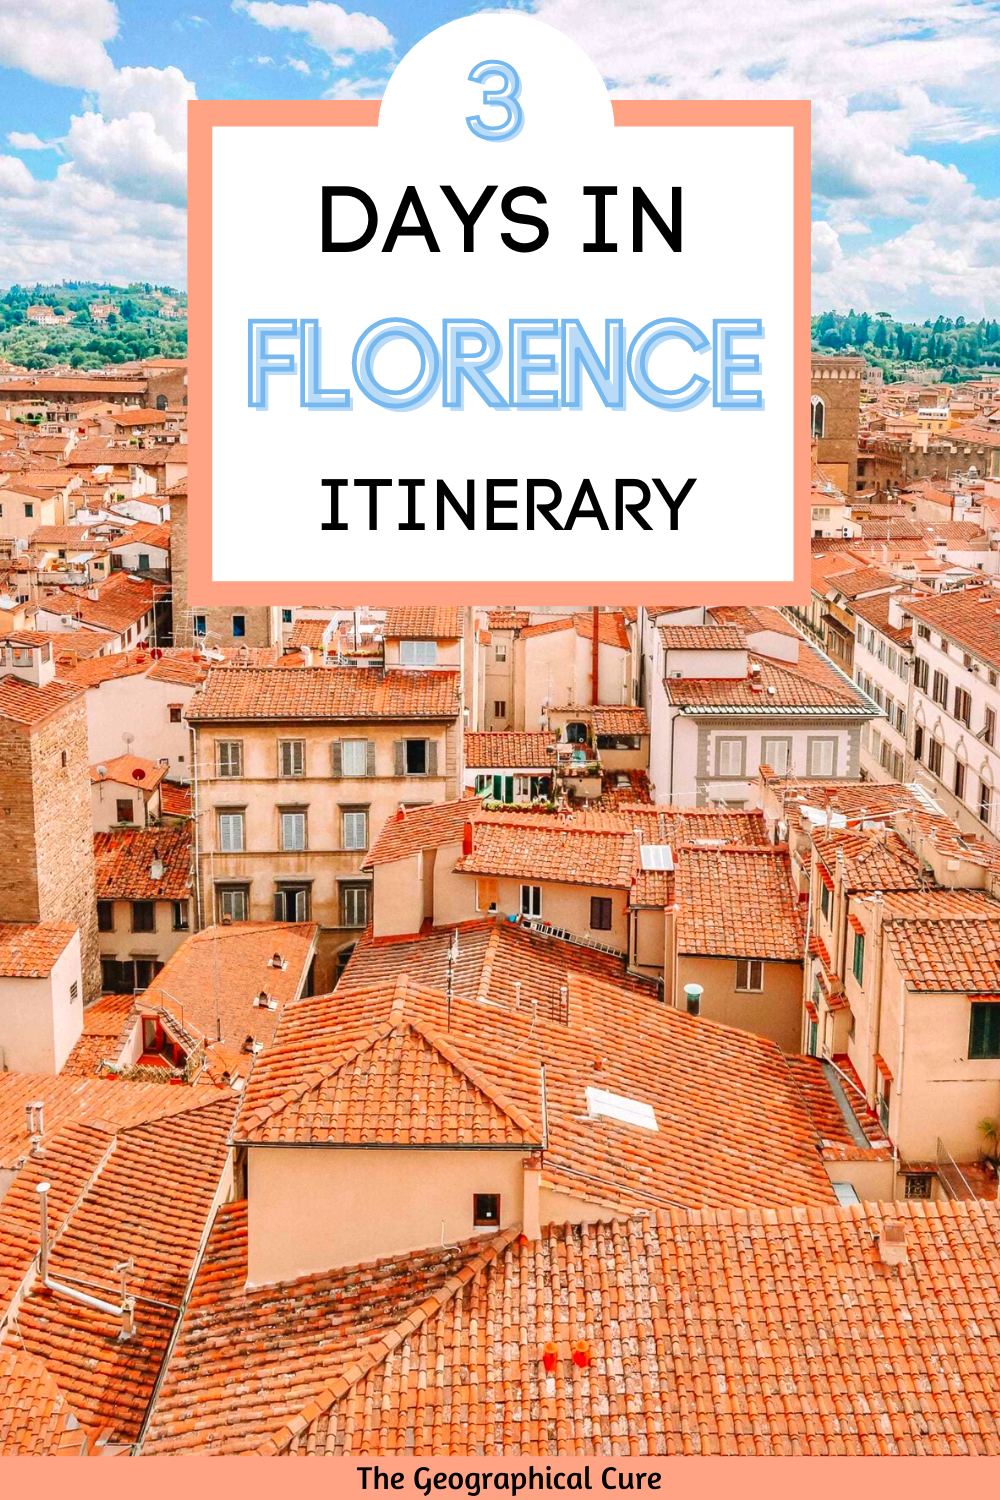 Perfect 3 Day Itinerary for Florence Italy, the Jewel of Tuscany